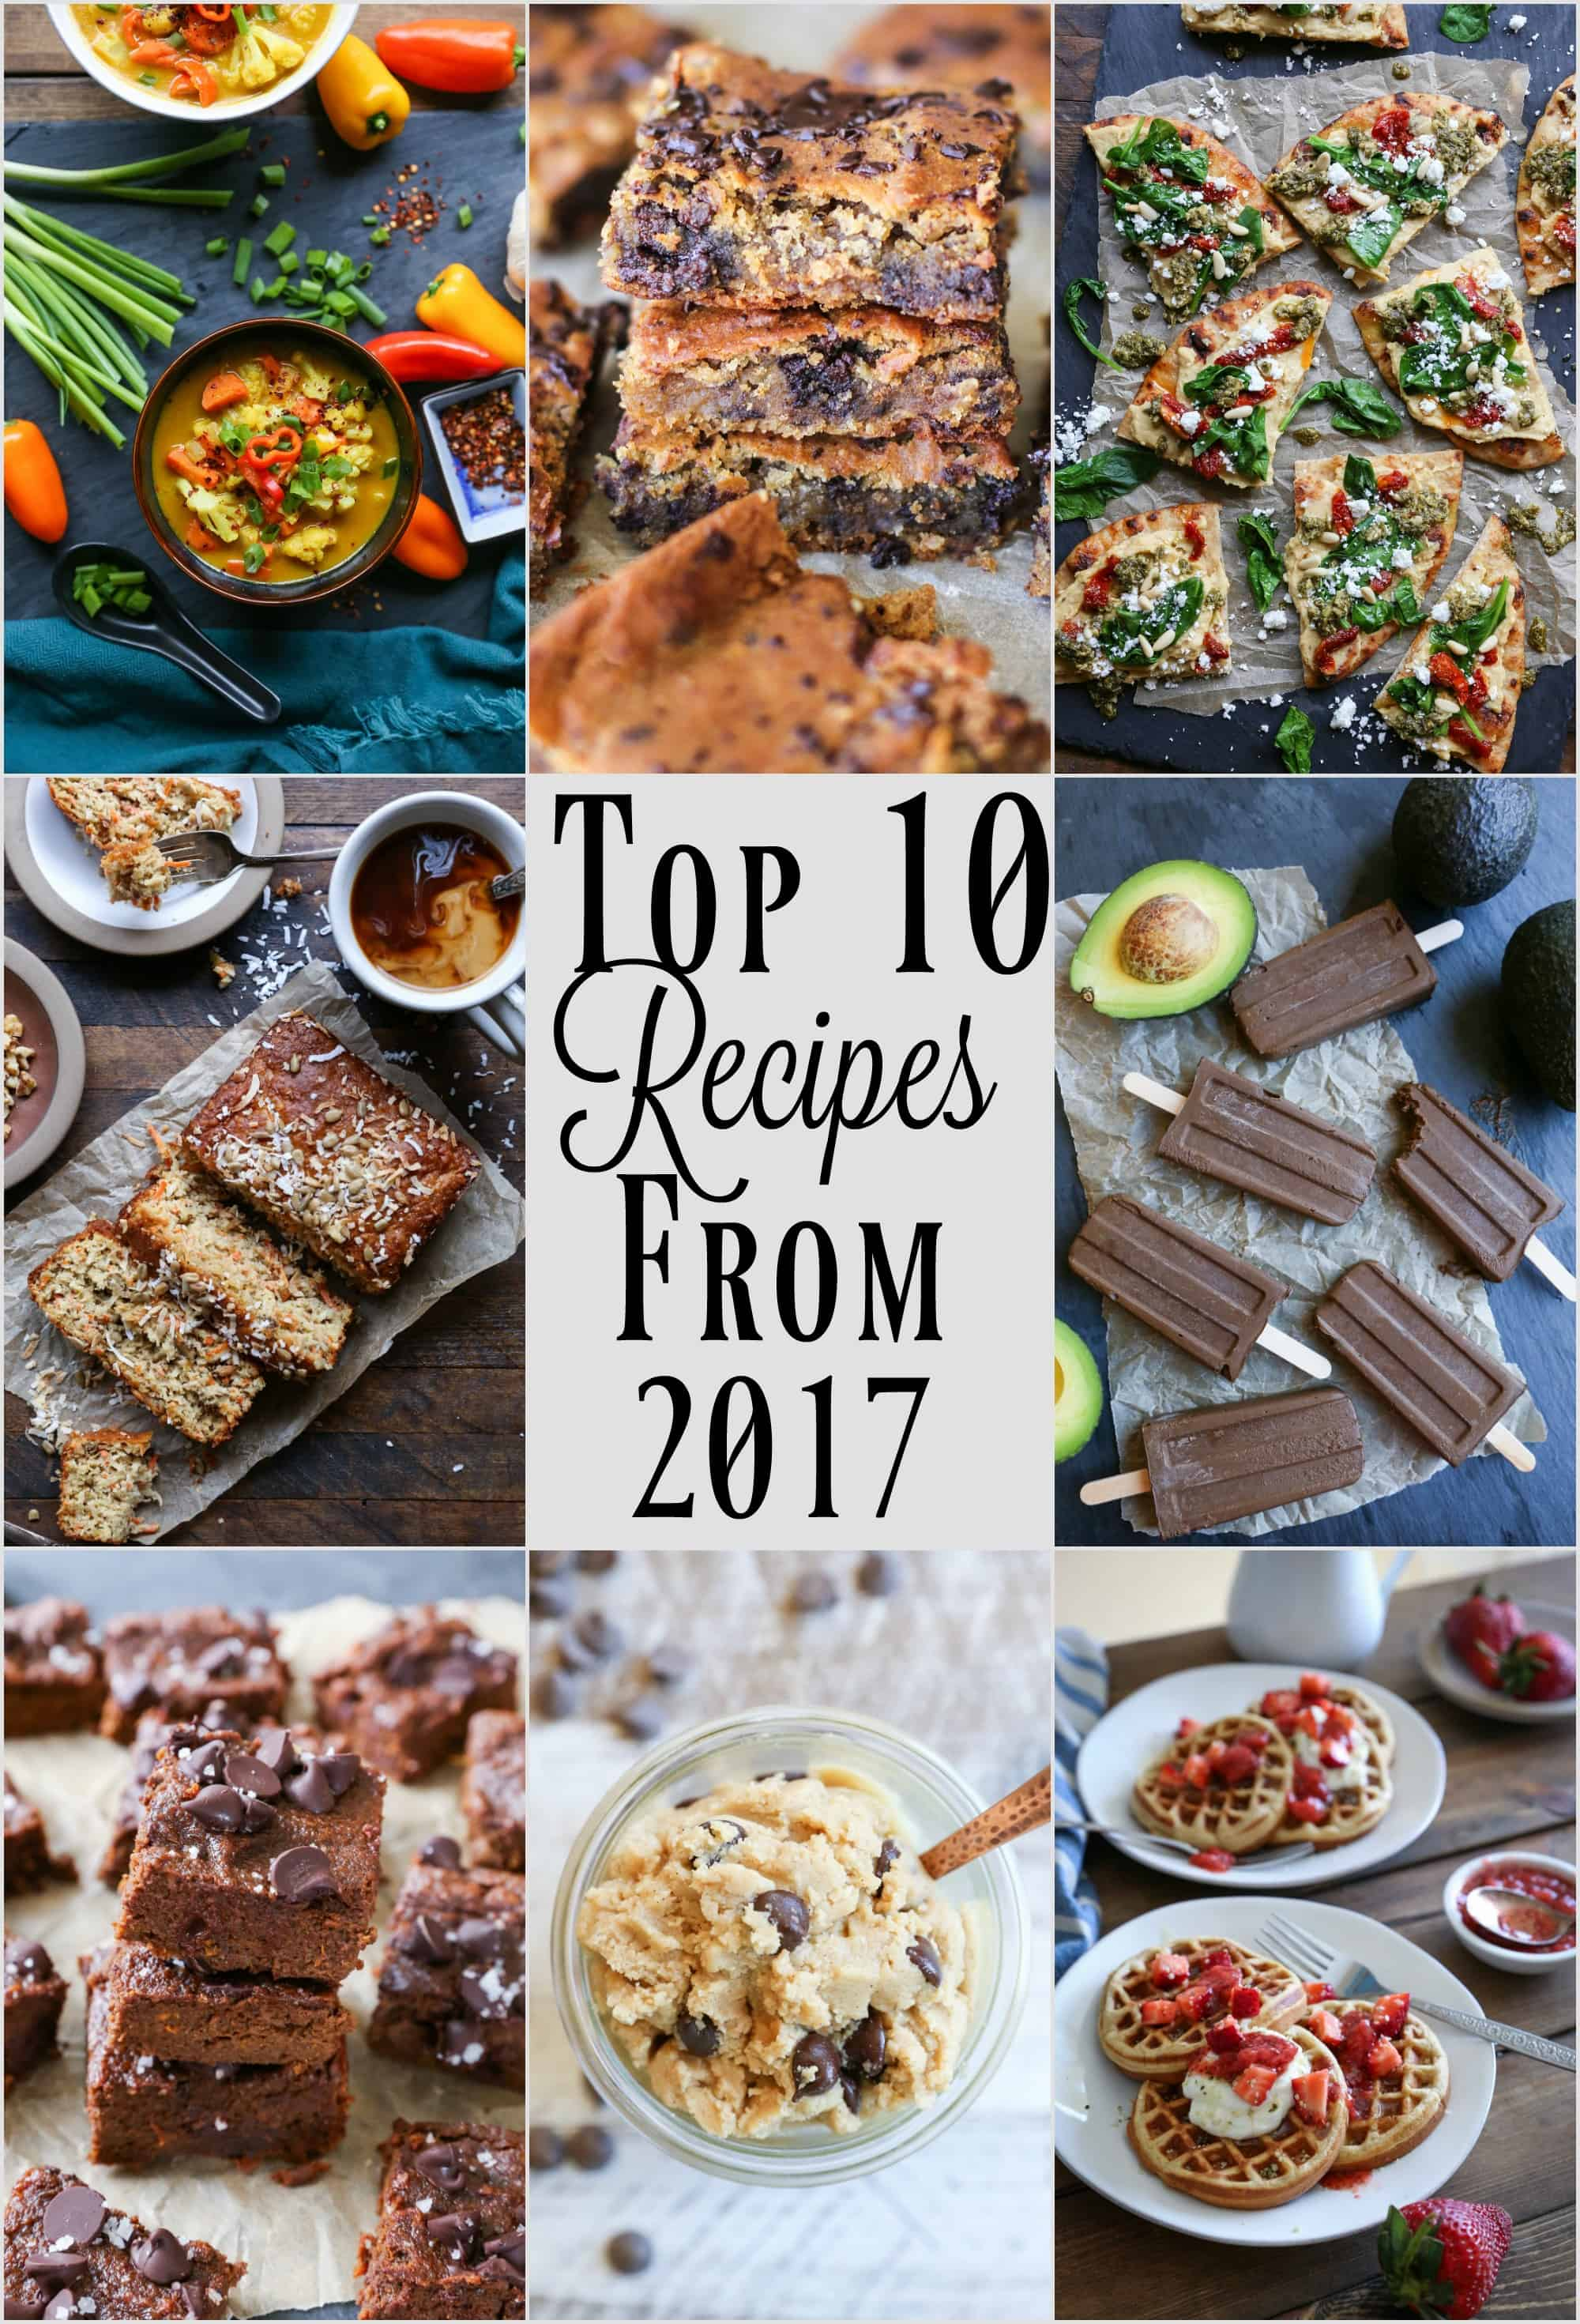 Top 10 Recipes from 2017 as seen on TheRoastedRoot.net #TheRoastedRoot